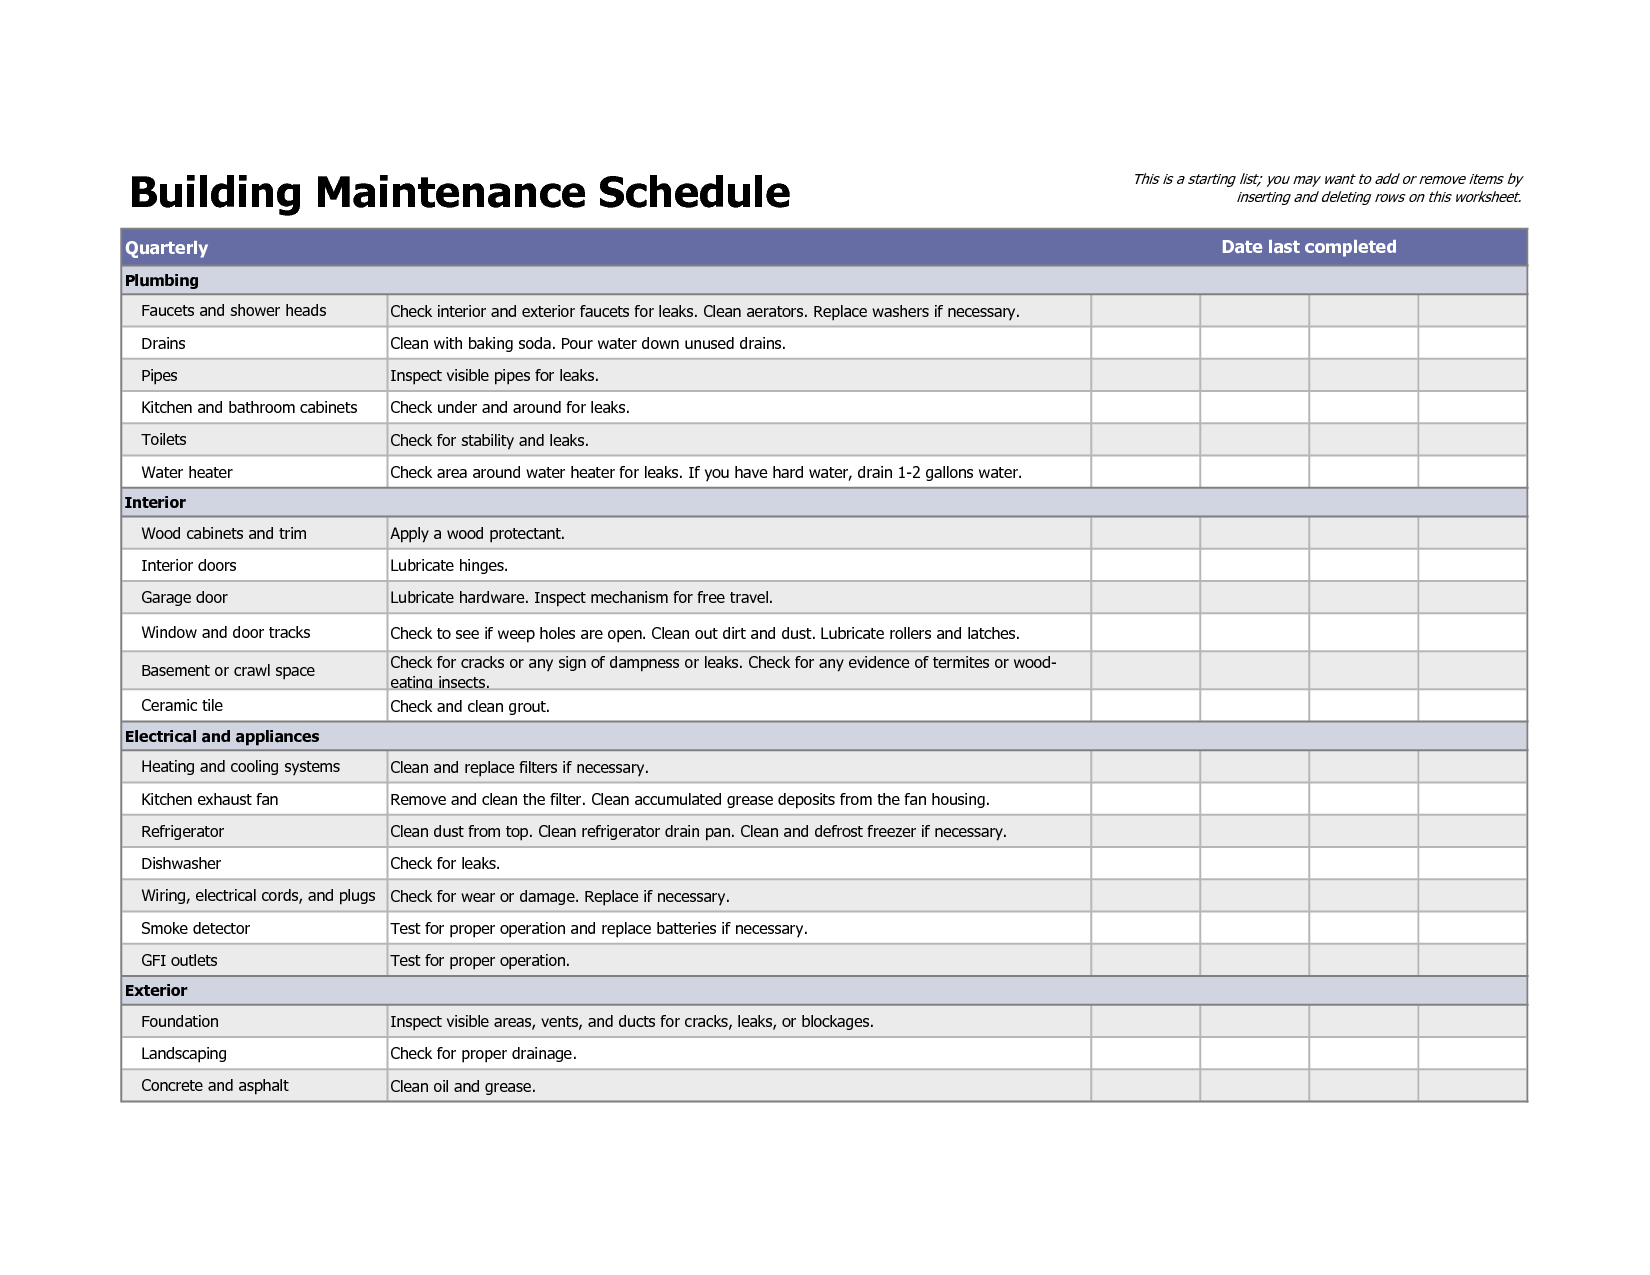 Building maintenance schedule excel template home for Maintenance schedules templates